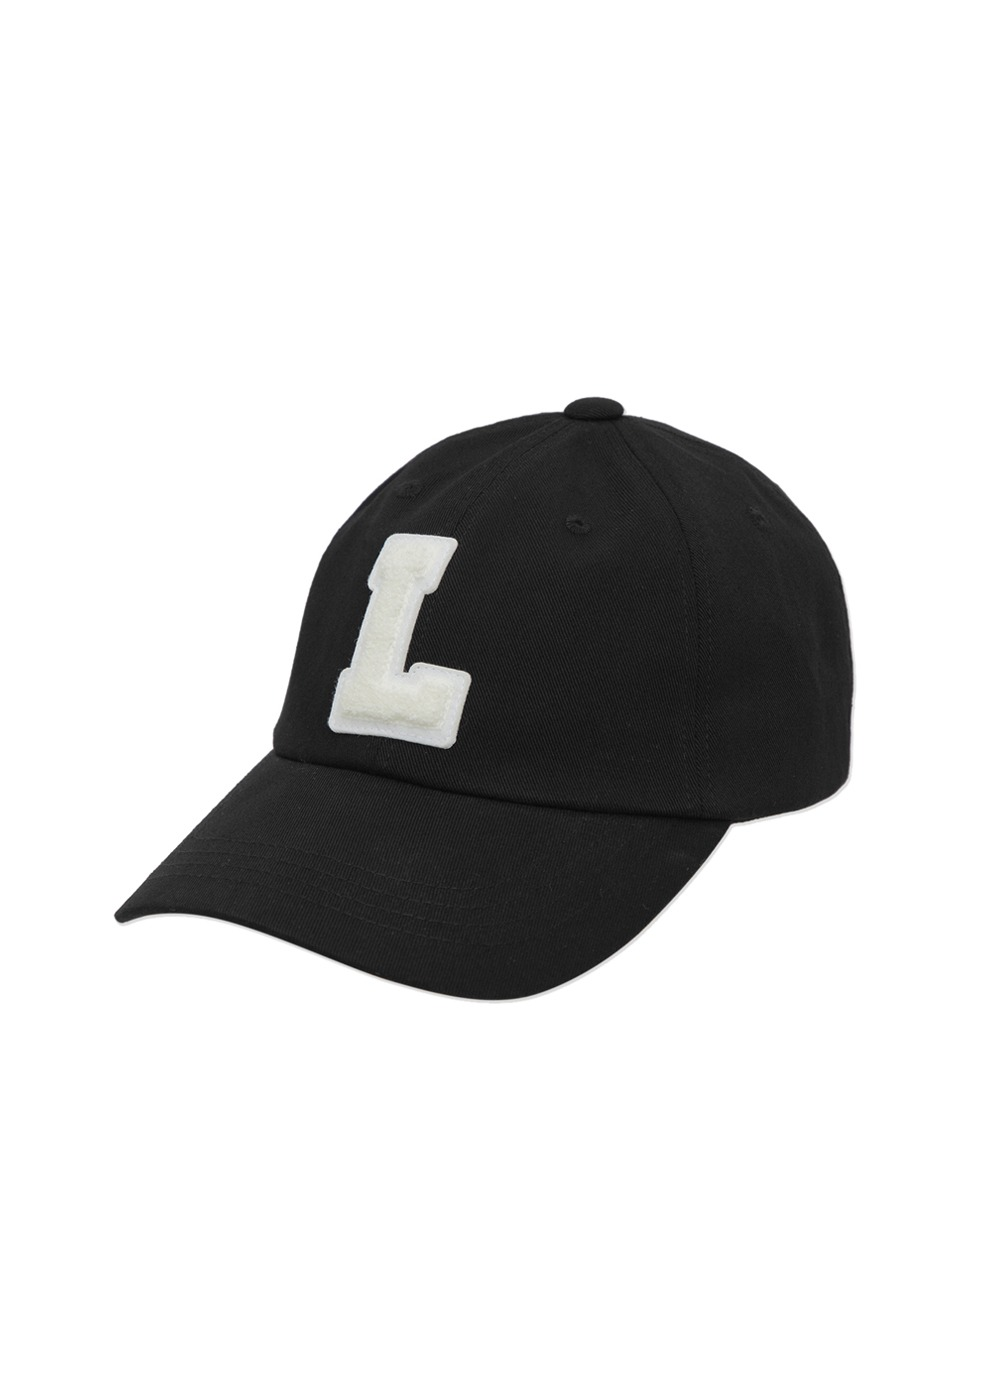 LMC L BOUCLE 6 PANEL CAP black